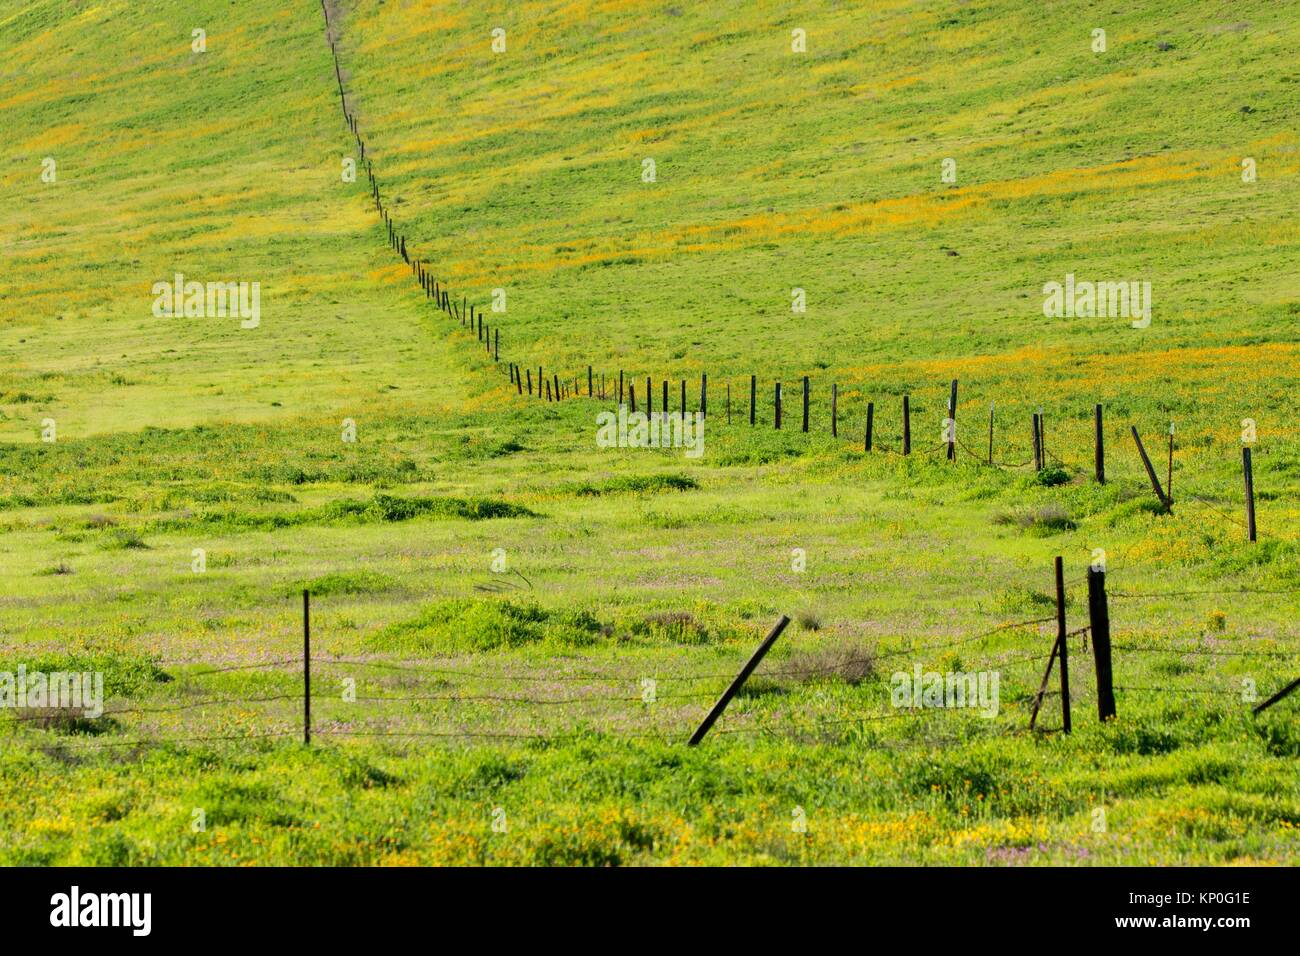 Ranch fence, Carrizo Plain National Monument, California. - Stock Image